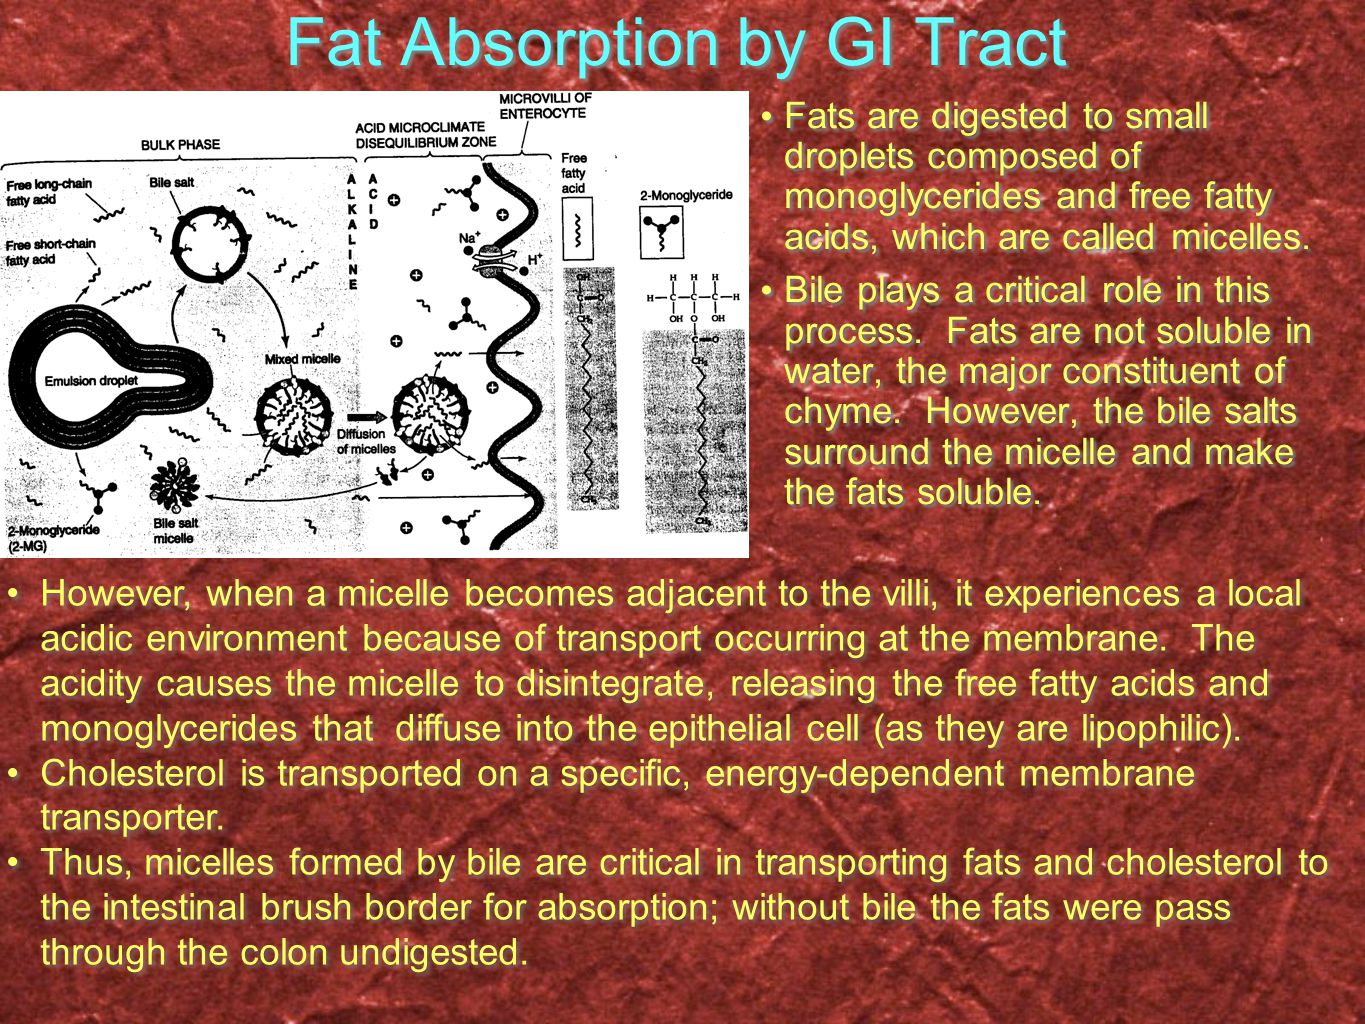 Fat Absorption by GI Tract Fats are digested to small droplets composed of monoglycerides and free fatty acids, which are called micelles.